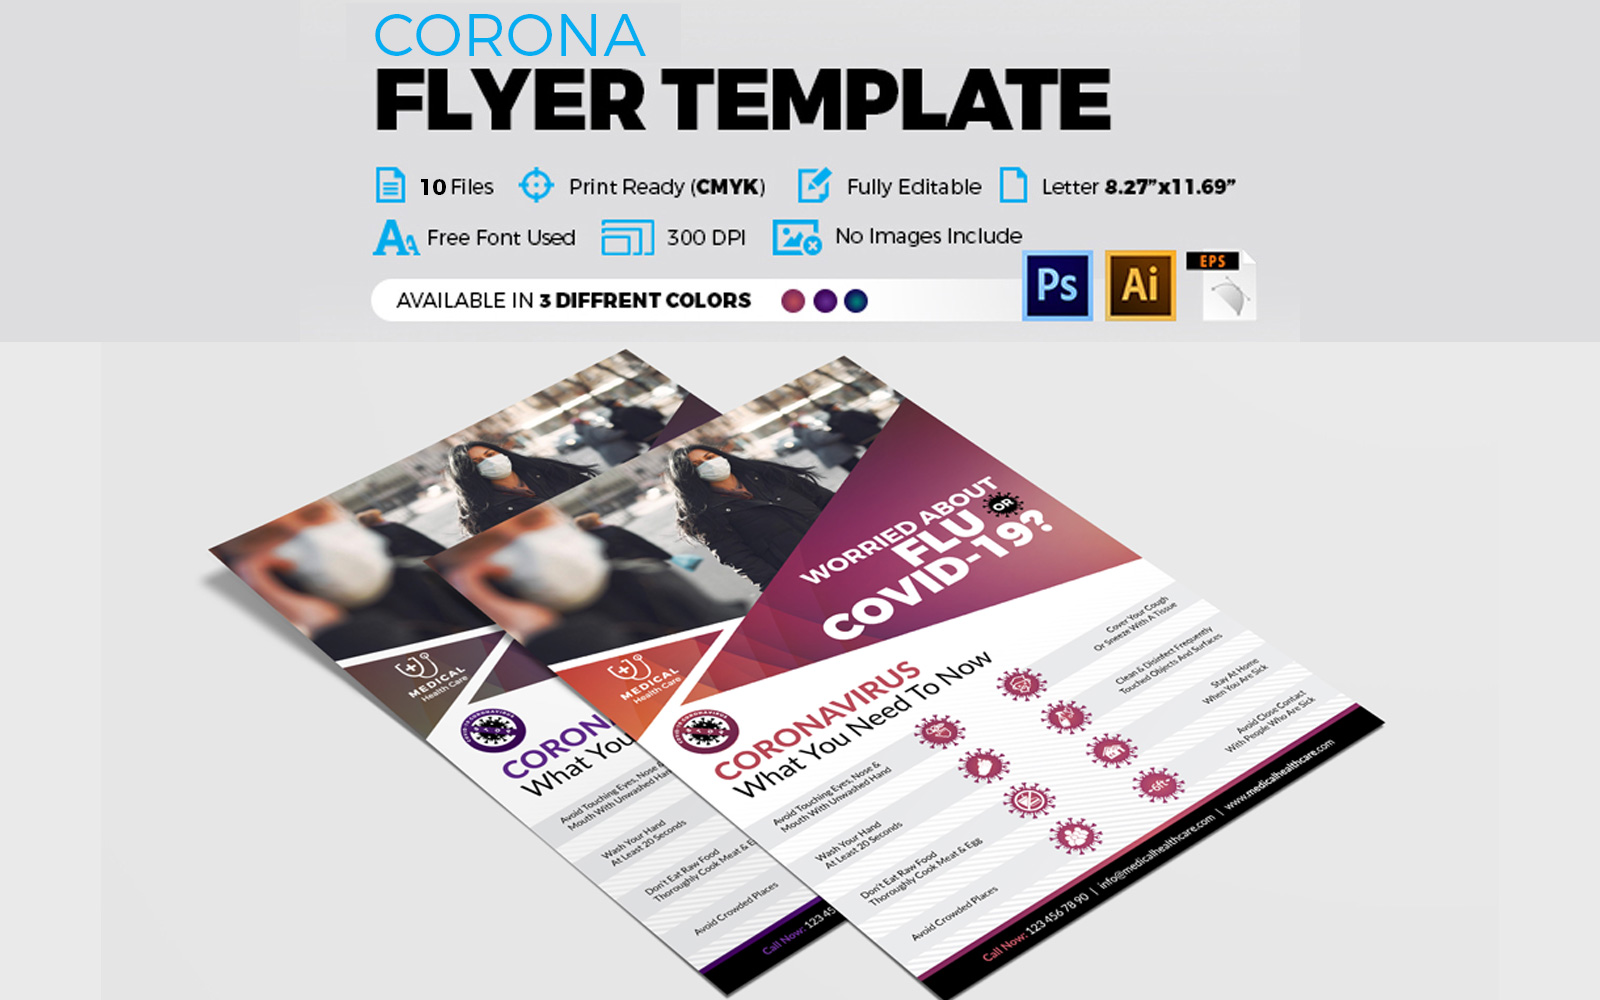 Coronavirus Flyer & Covid 19 Flyer Corporate Identity Template